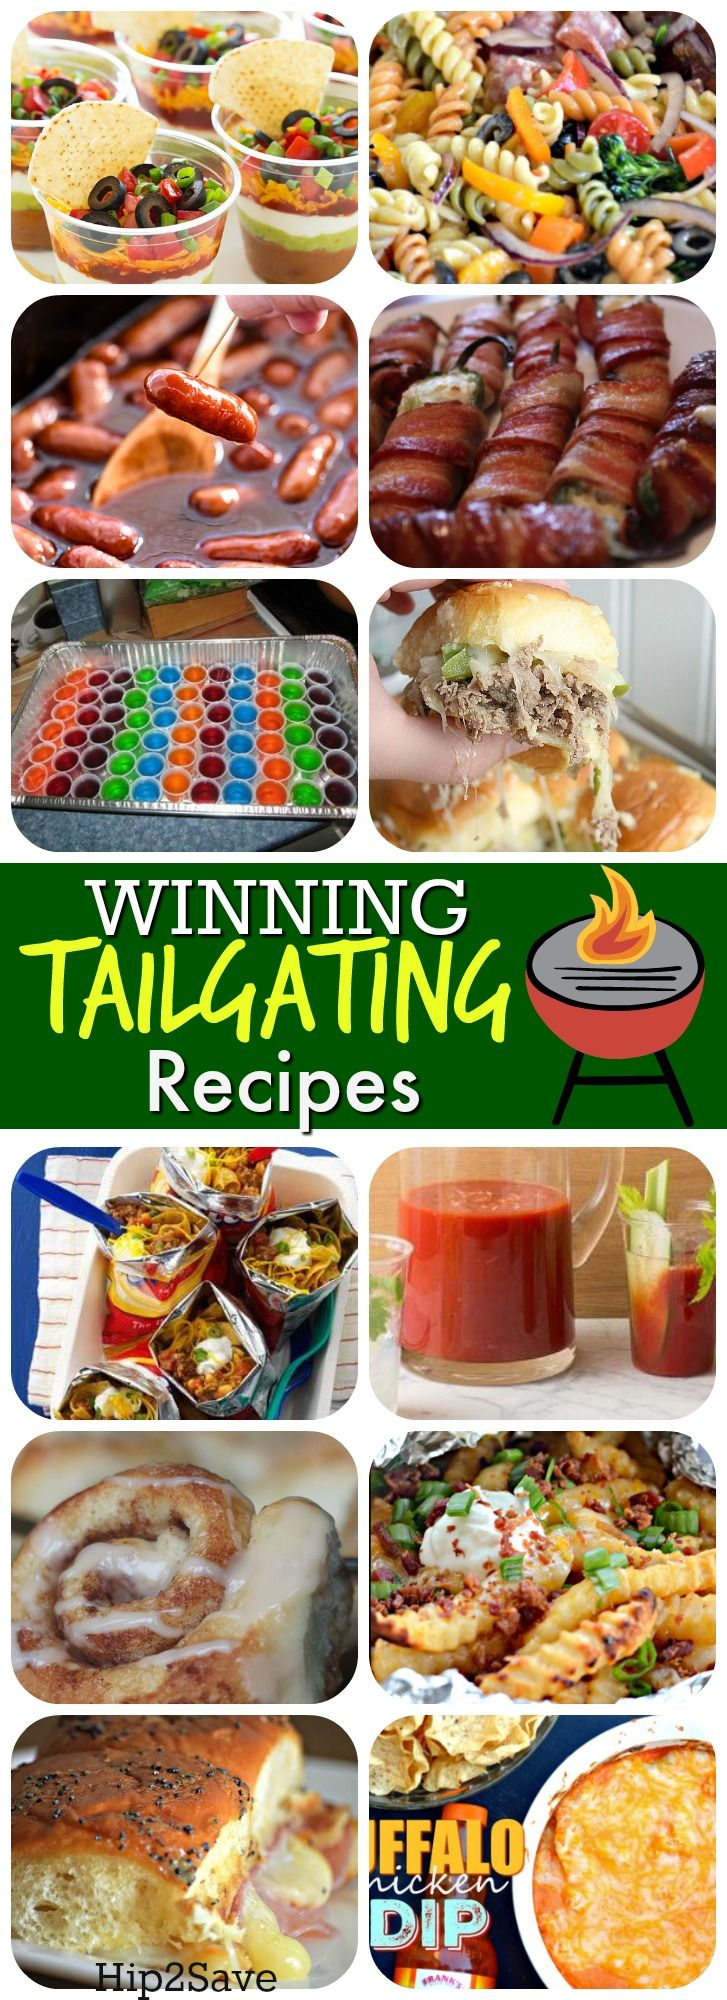 Discussion on this topic: 8 Delicious Tailgating Recipes That Arent Horrible , 8-delicious-tailgating-recipes-that-arent-horrible/